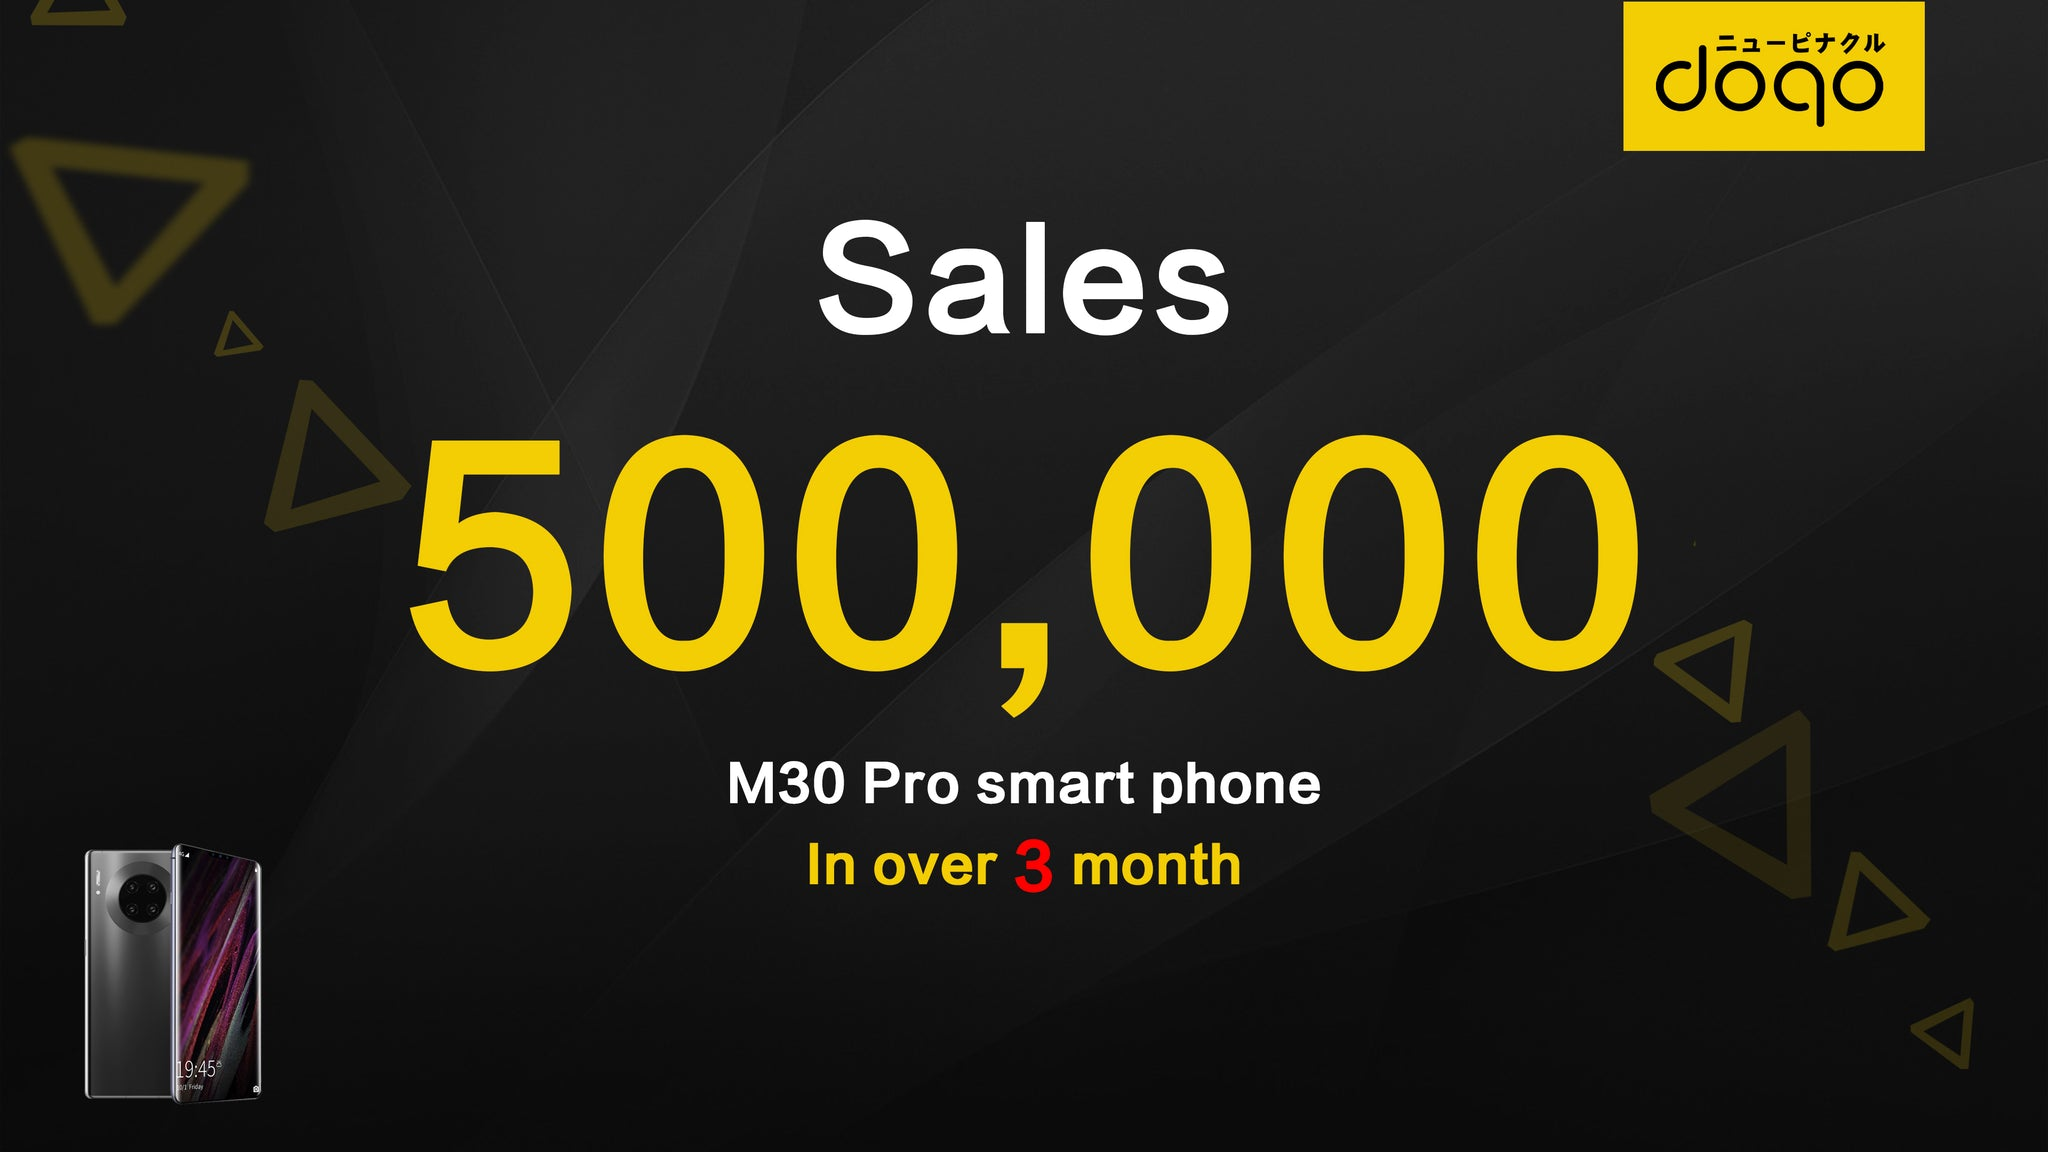 Doqo mobile phone has been sole more than 500,000 in three months